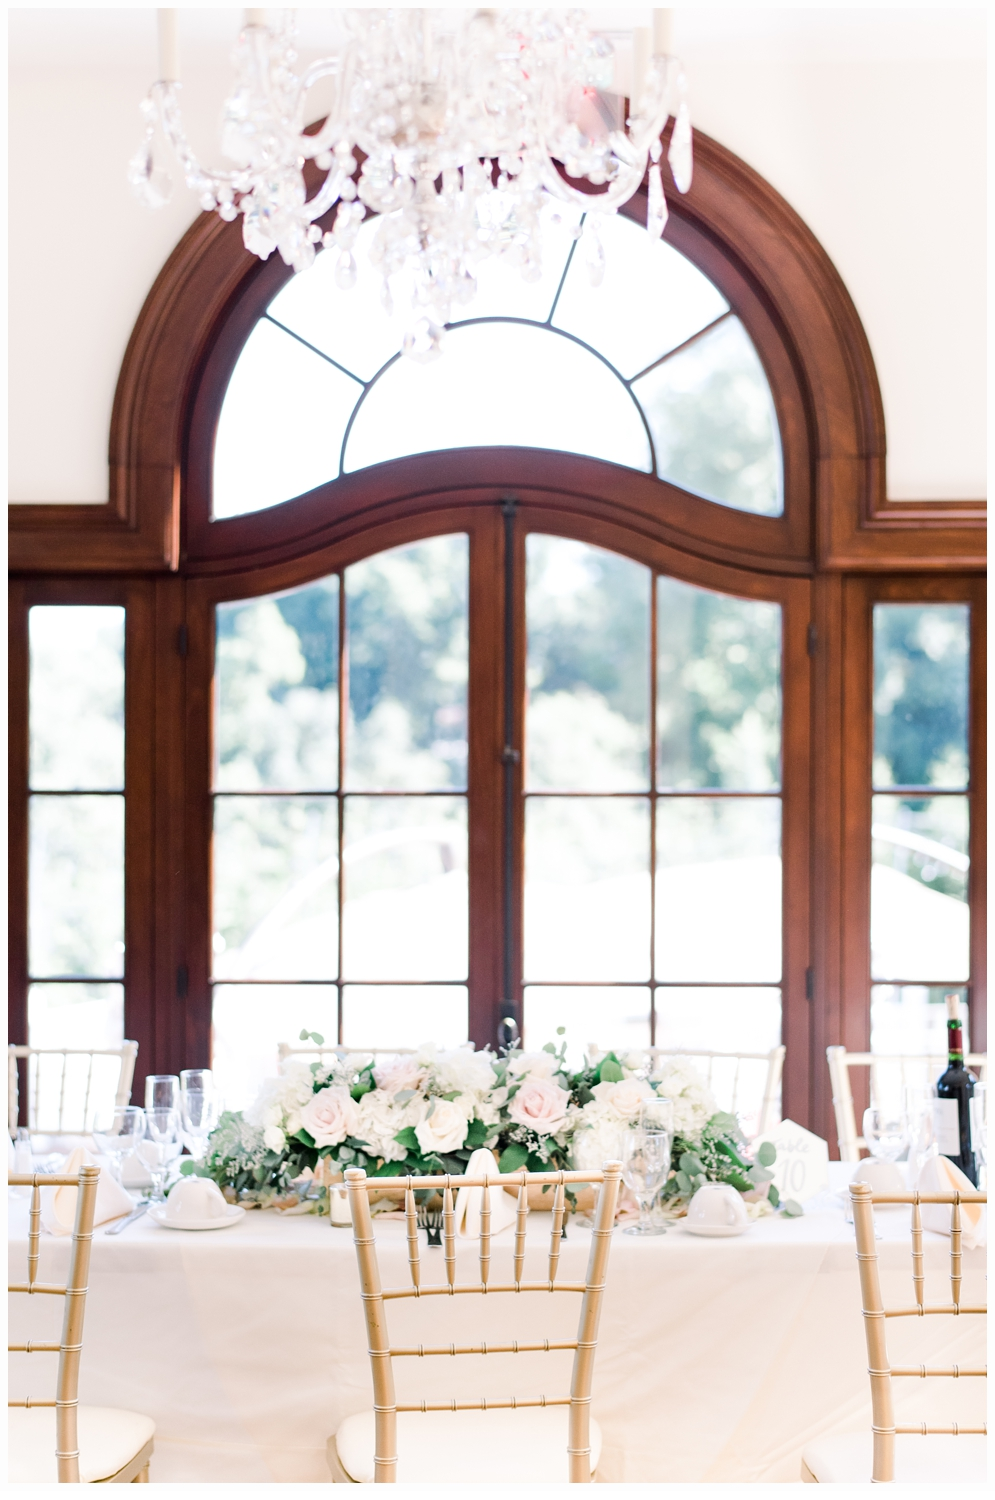 pretty window and tablescape